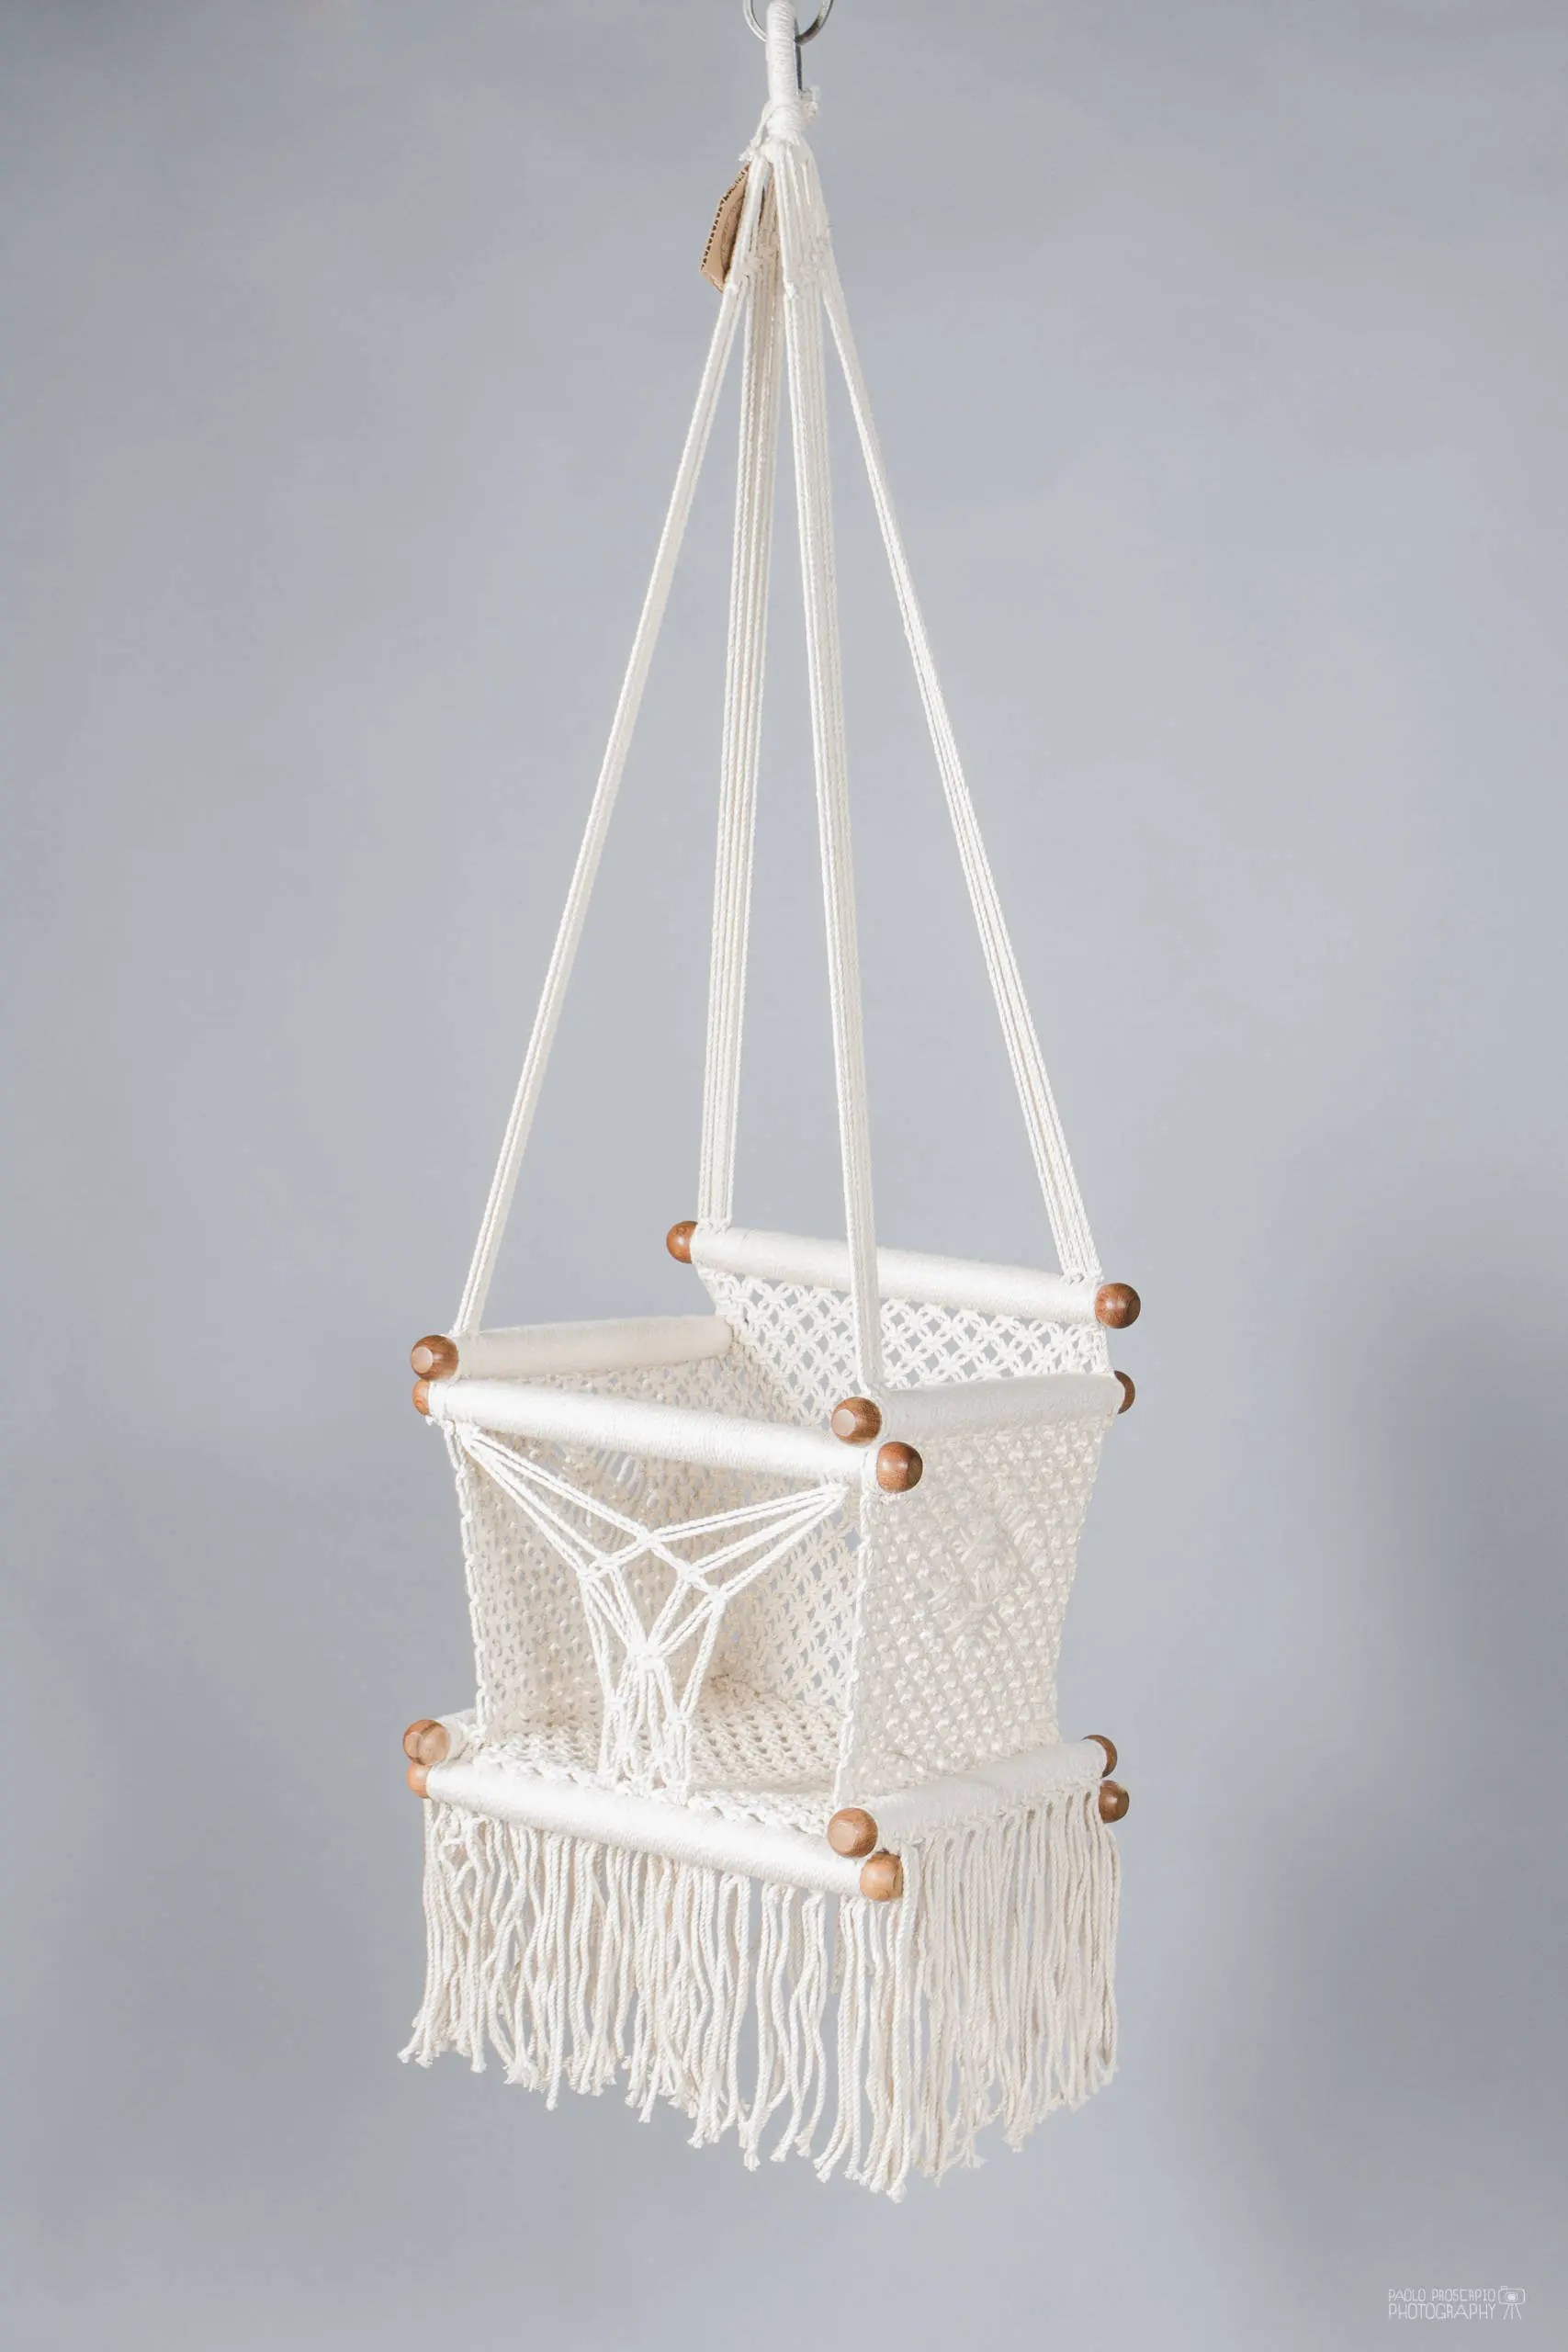 baby swing chair nz paris cafe table and chairs in macrame made cream color cotton